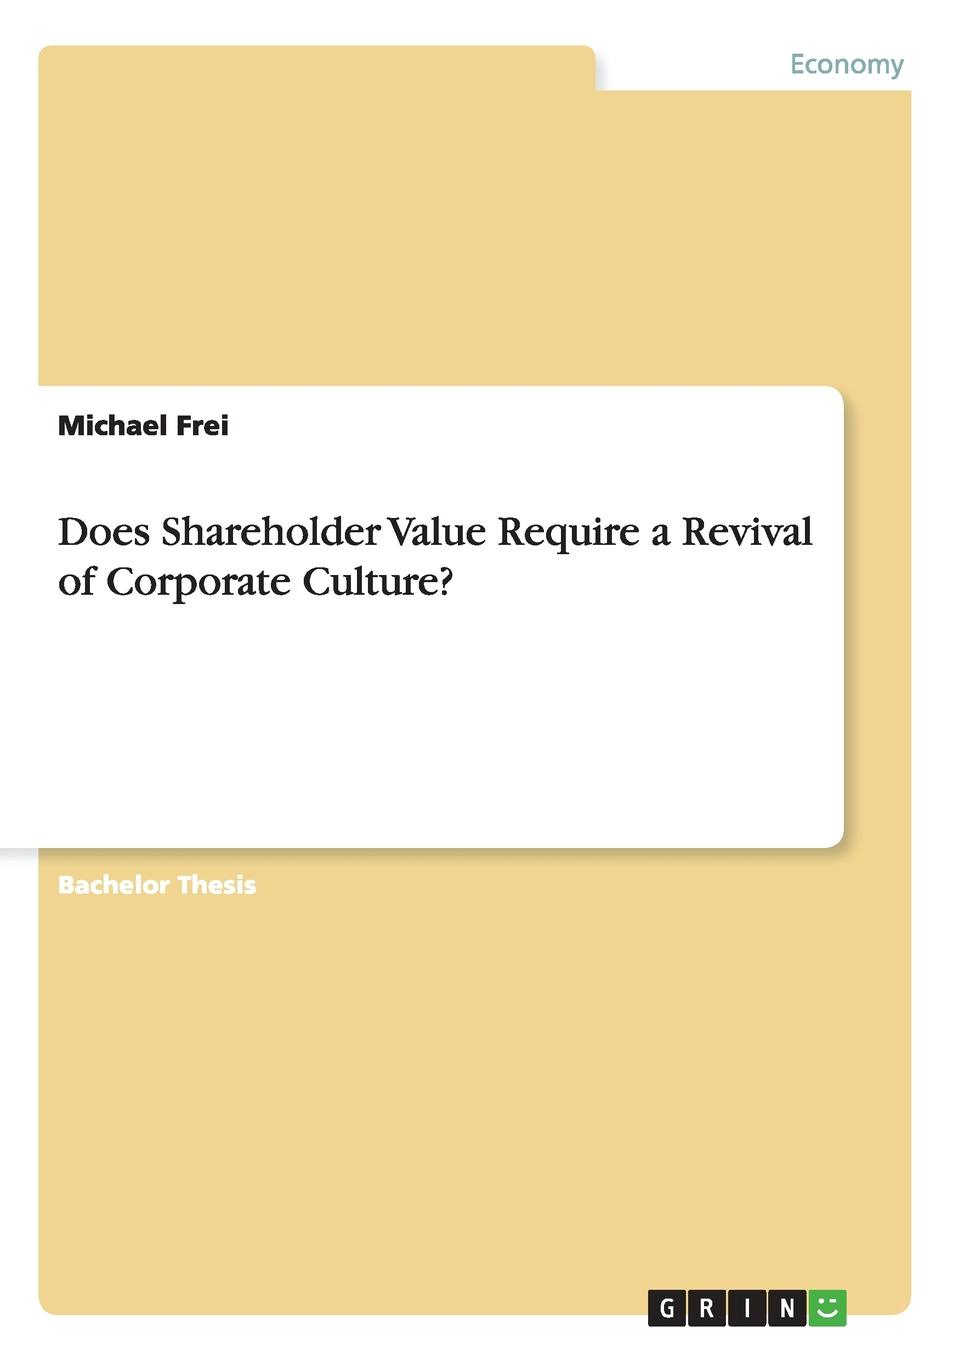 Michael Frei Does Shareholder Value Require a Revival of Corporate Culture. v jones rory the executive guide to boosting cash flow and shareholder value the profit pool approach